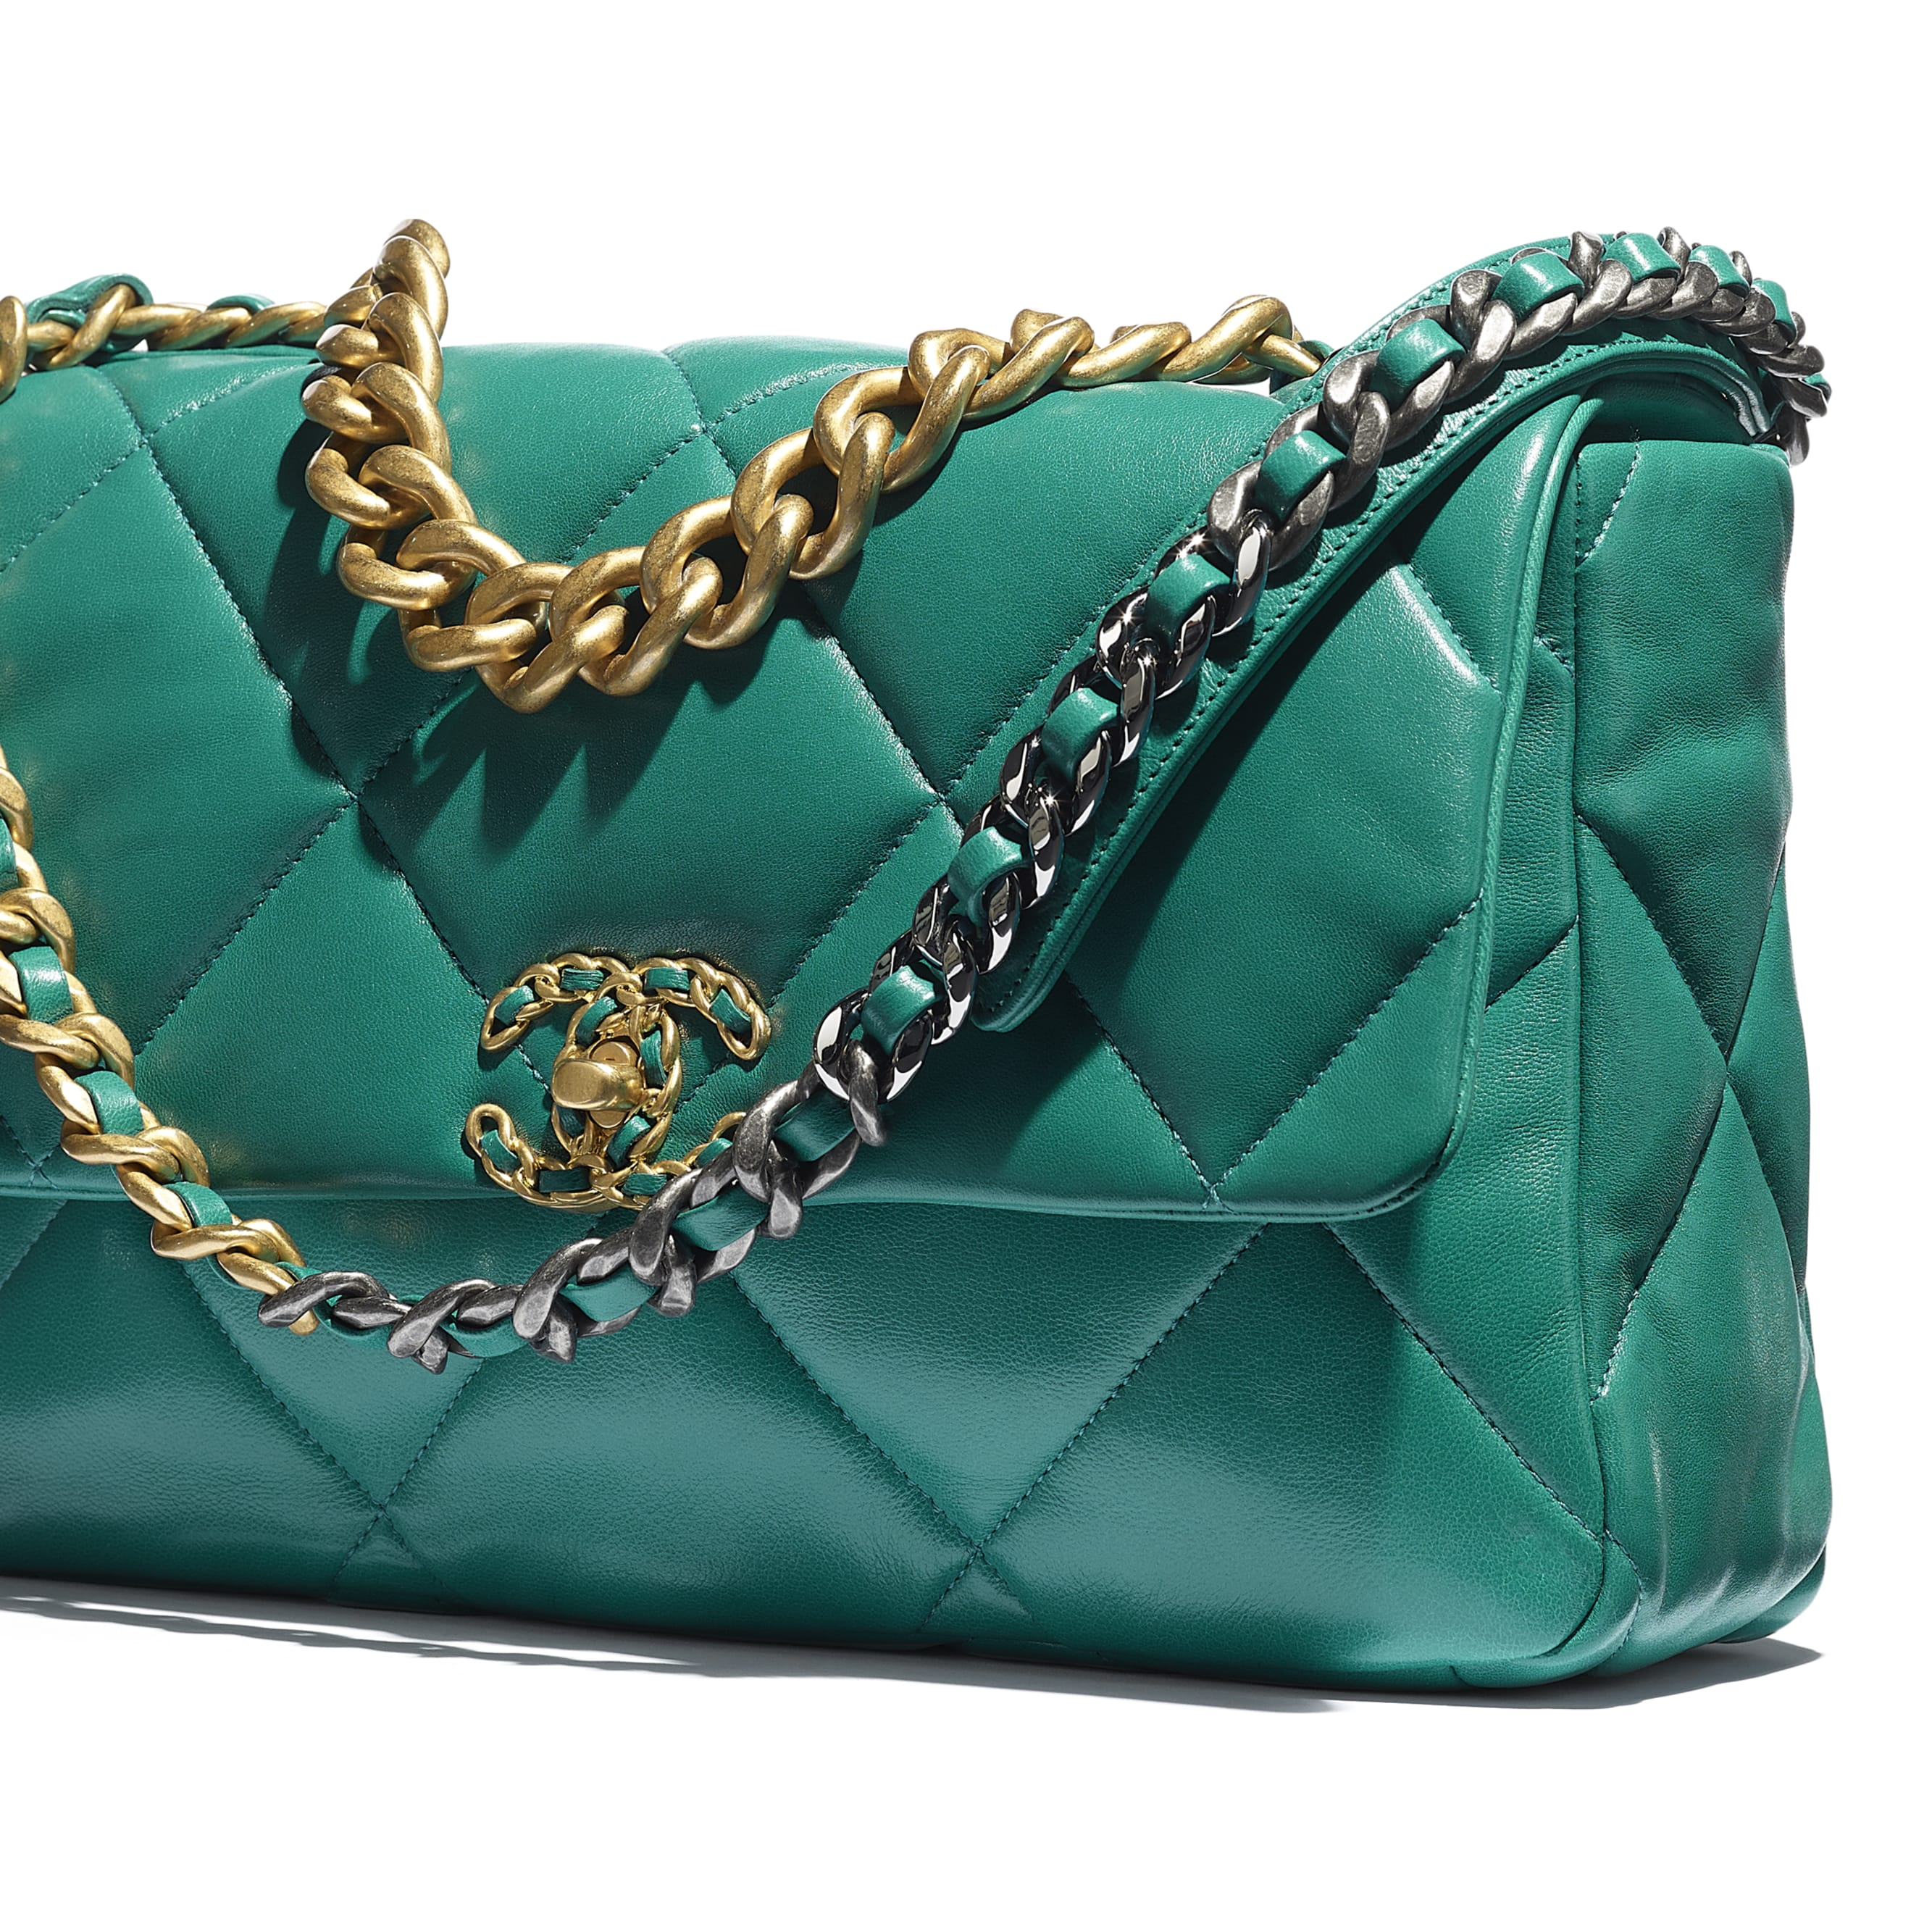 CHANEL 19 Large Flap Bag - Green - Lambskin, Gold-Tone, Silver-Tone & Ruthenium-Finish Metal - CHANEL - Extra view - see standard sized version